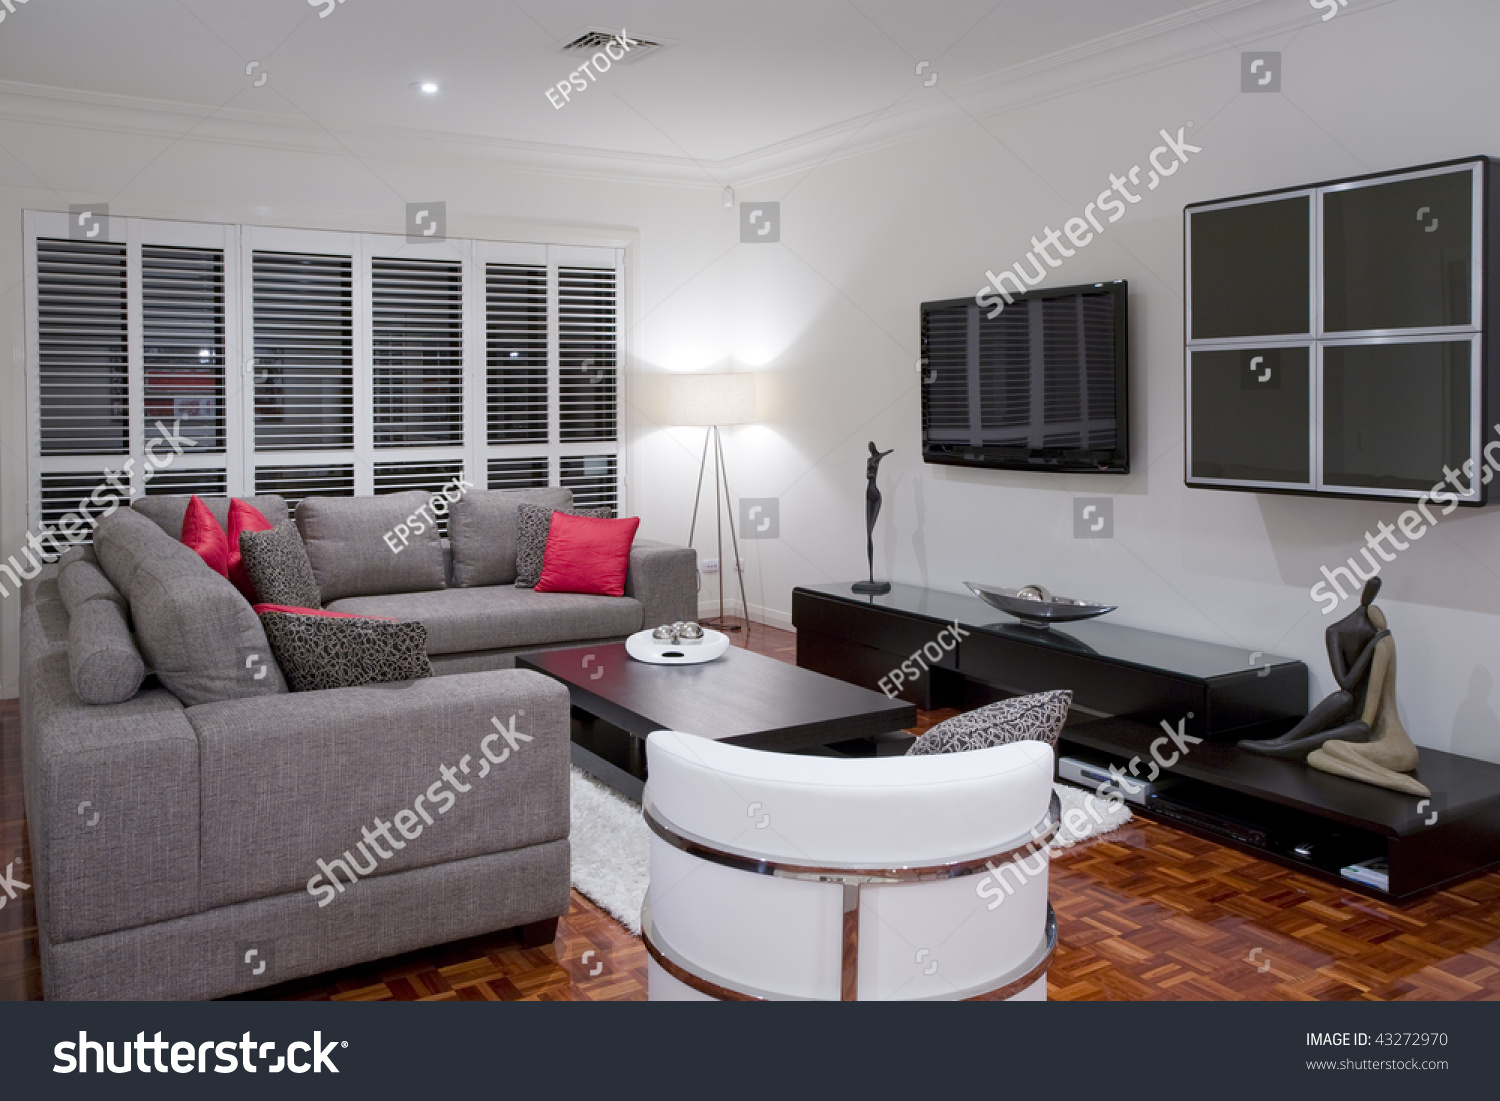 Modern living room interior with charcoal sofa and chocolate brown coffee table and wide screen for Charcoal and brown living room